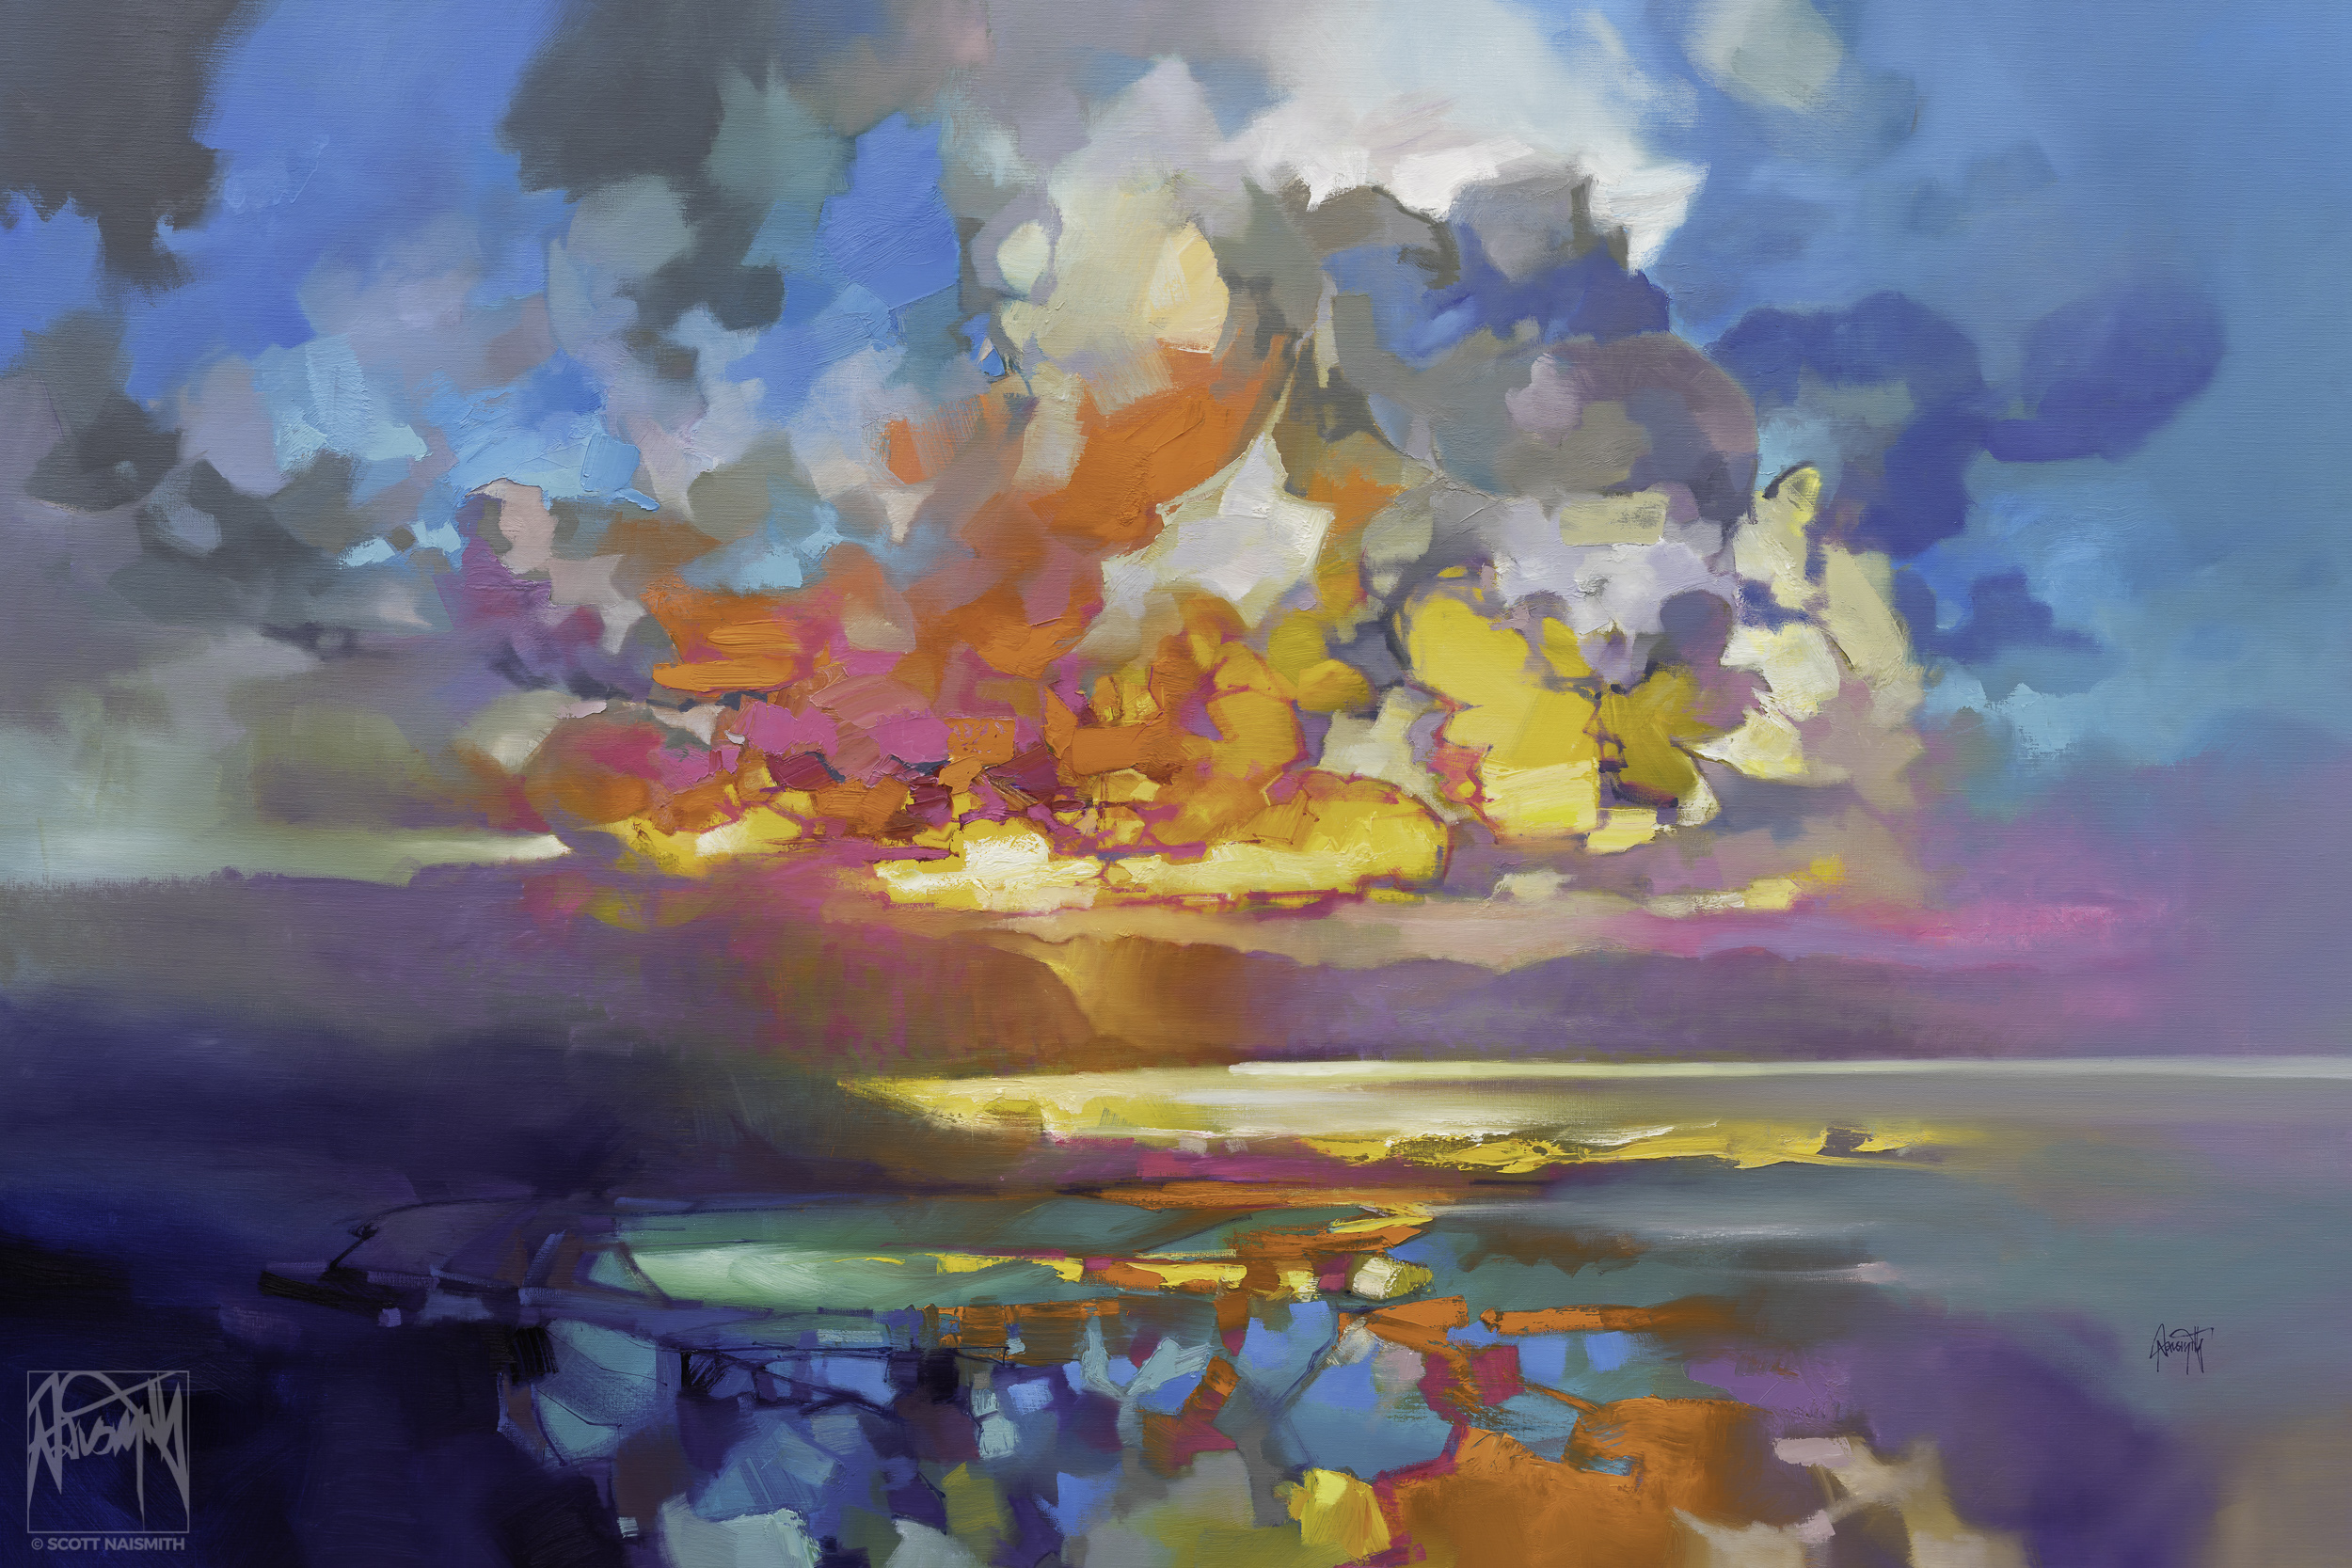 'Taoist Skye' | 120 x 180cm Oil on Linen | by Scott Naismith